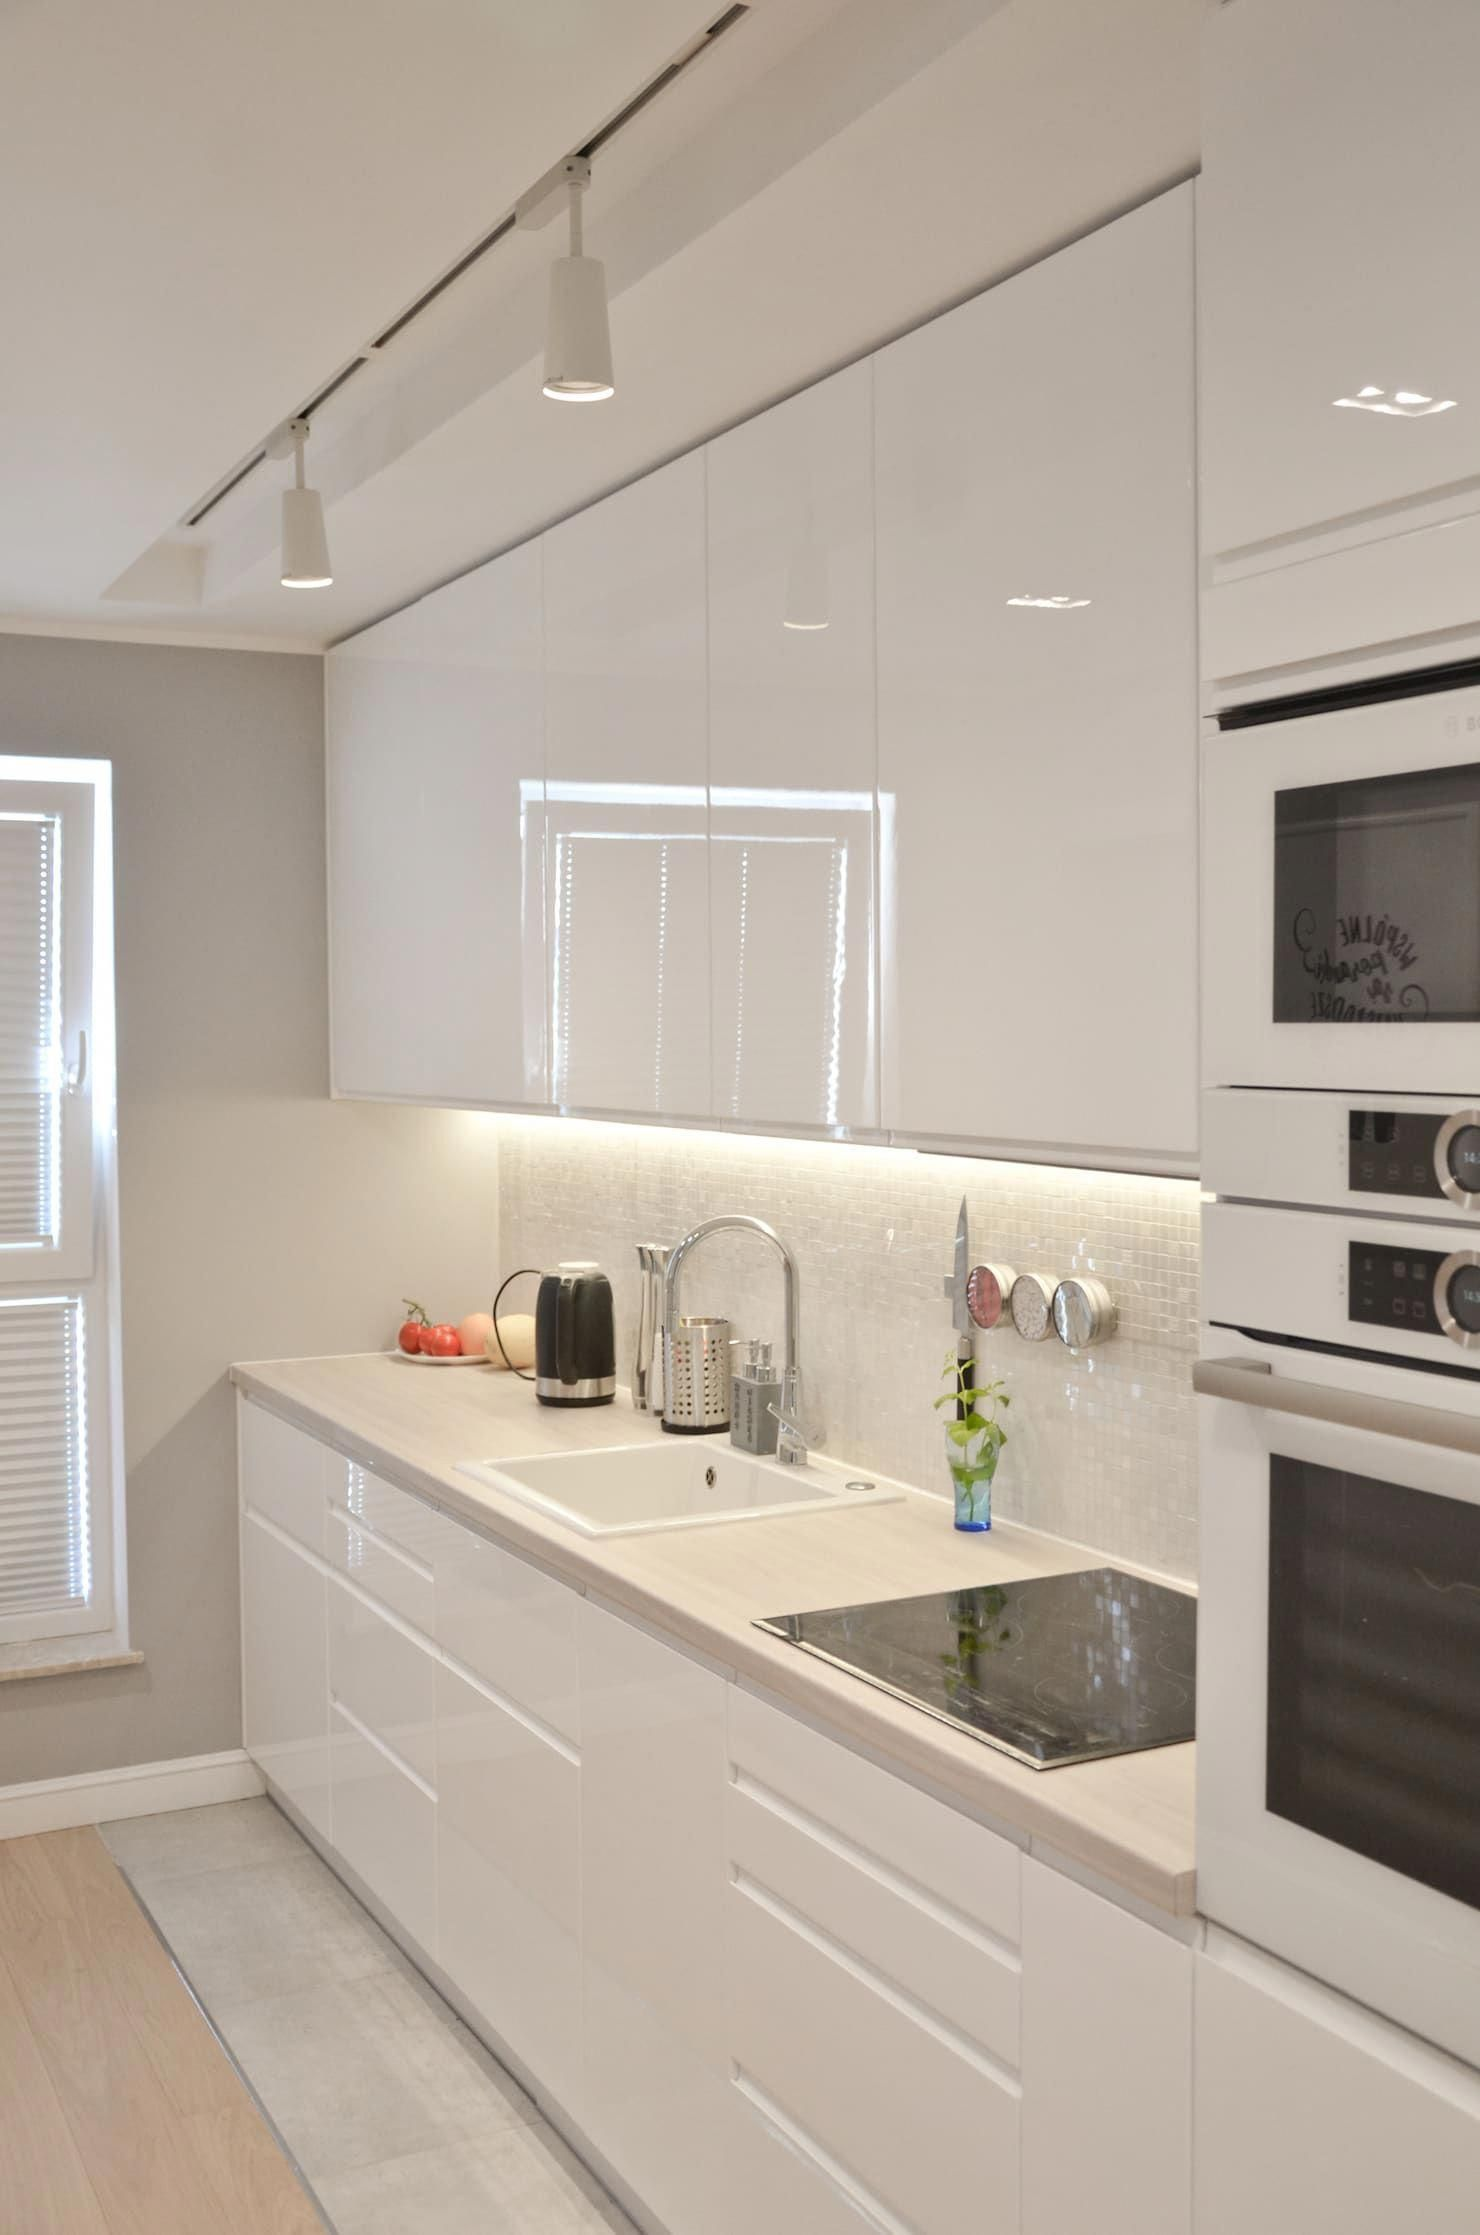 35 Glamorous Modern Kitchen Ideas 2020 You Should Try Small